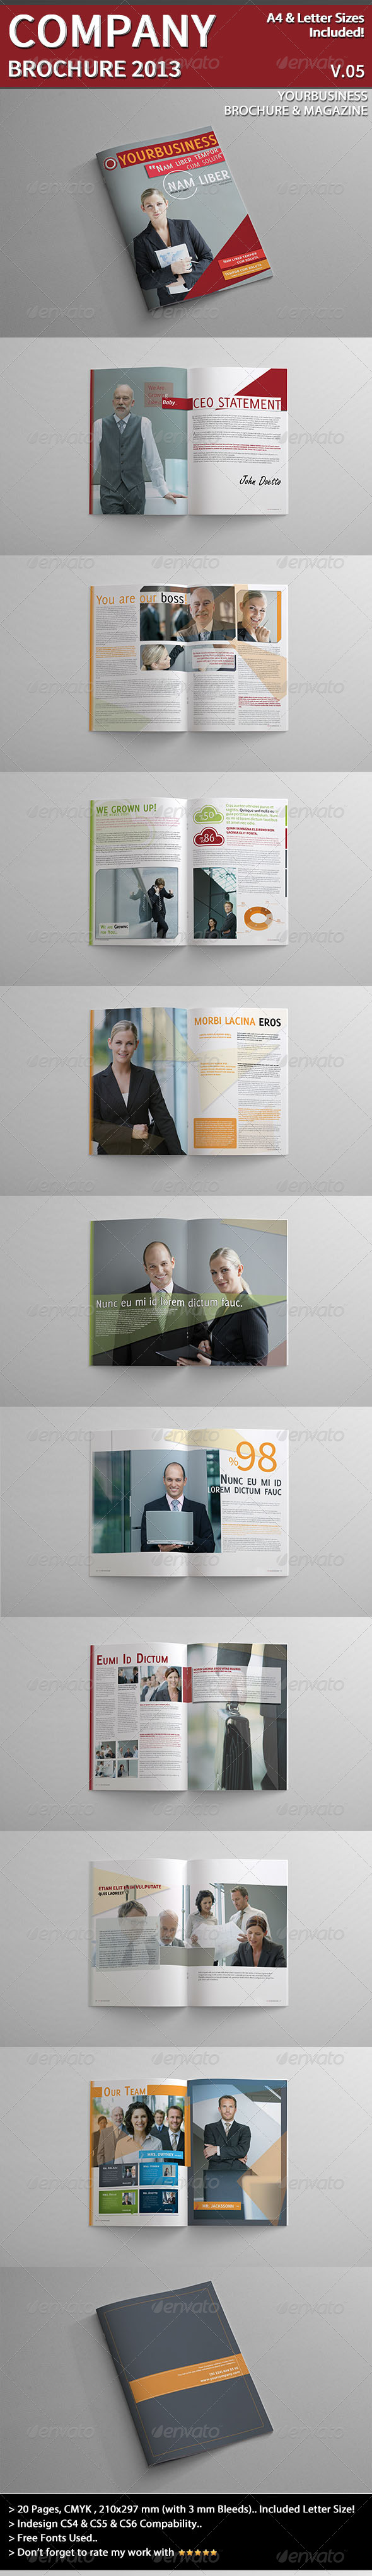 Company Brochure 2013 Part 05 - Corporate Brochures